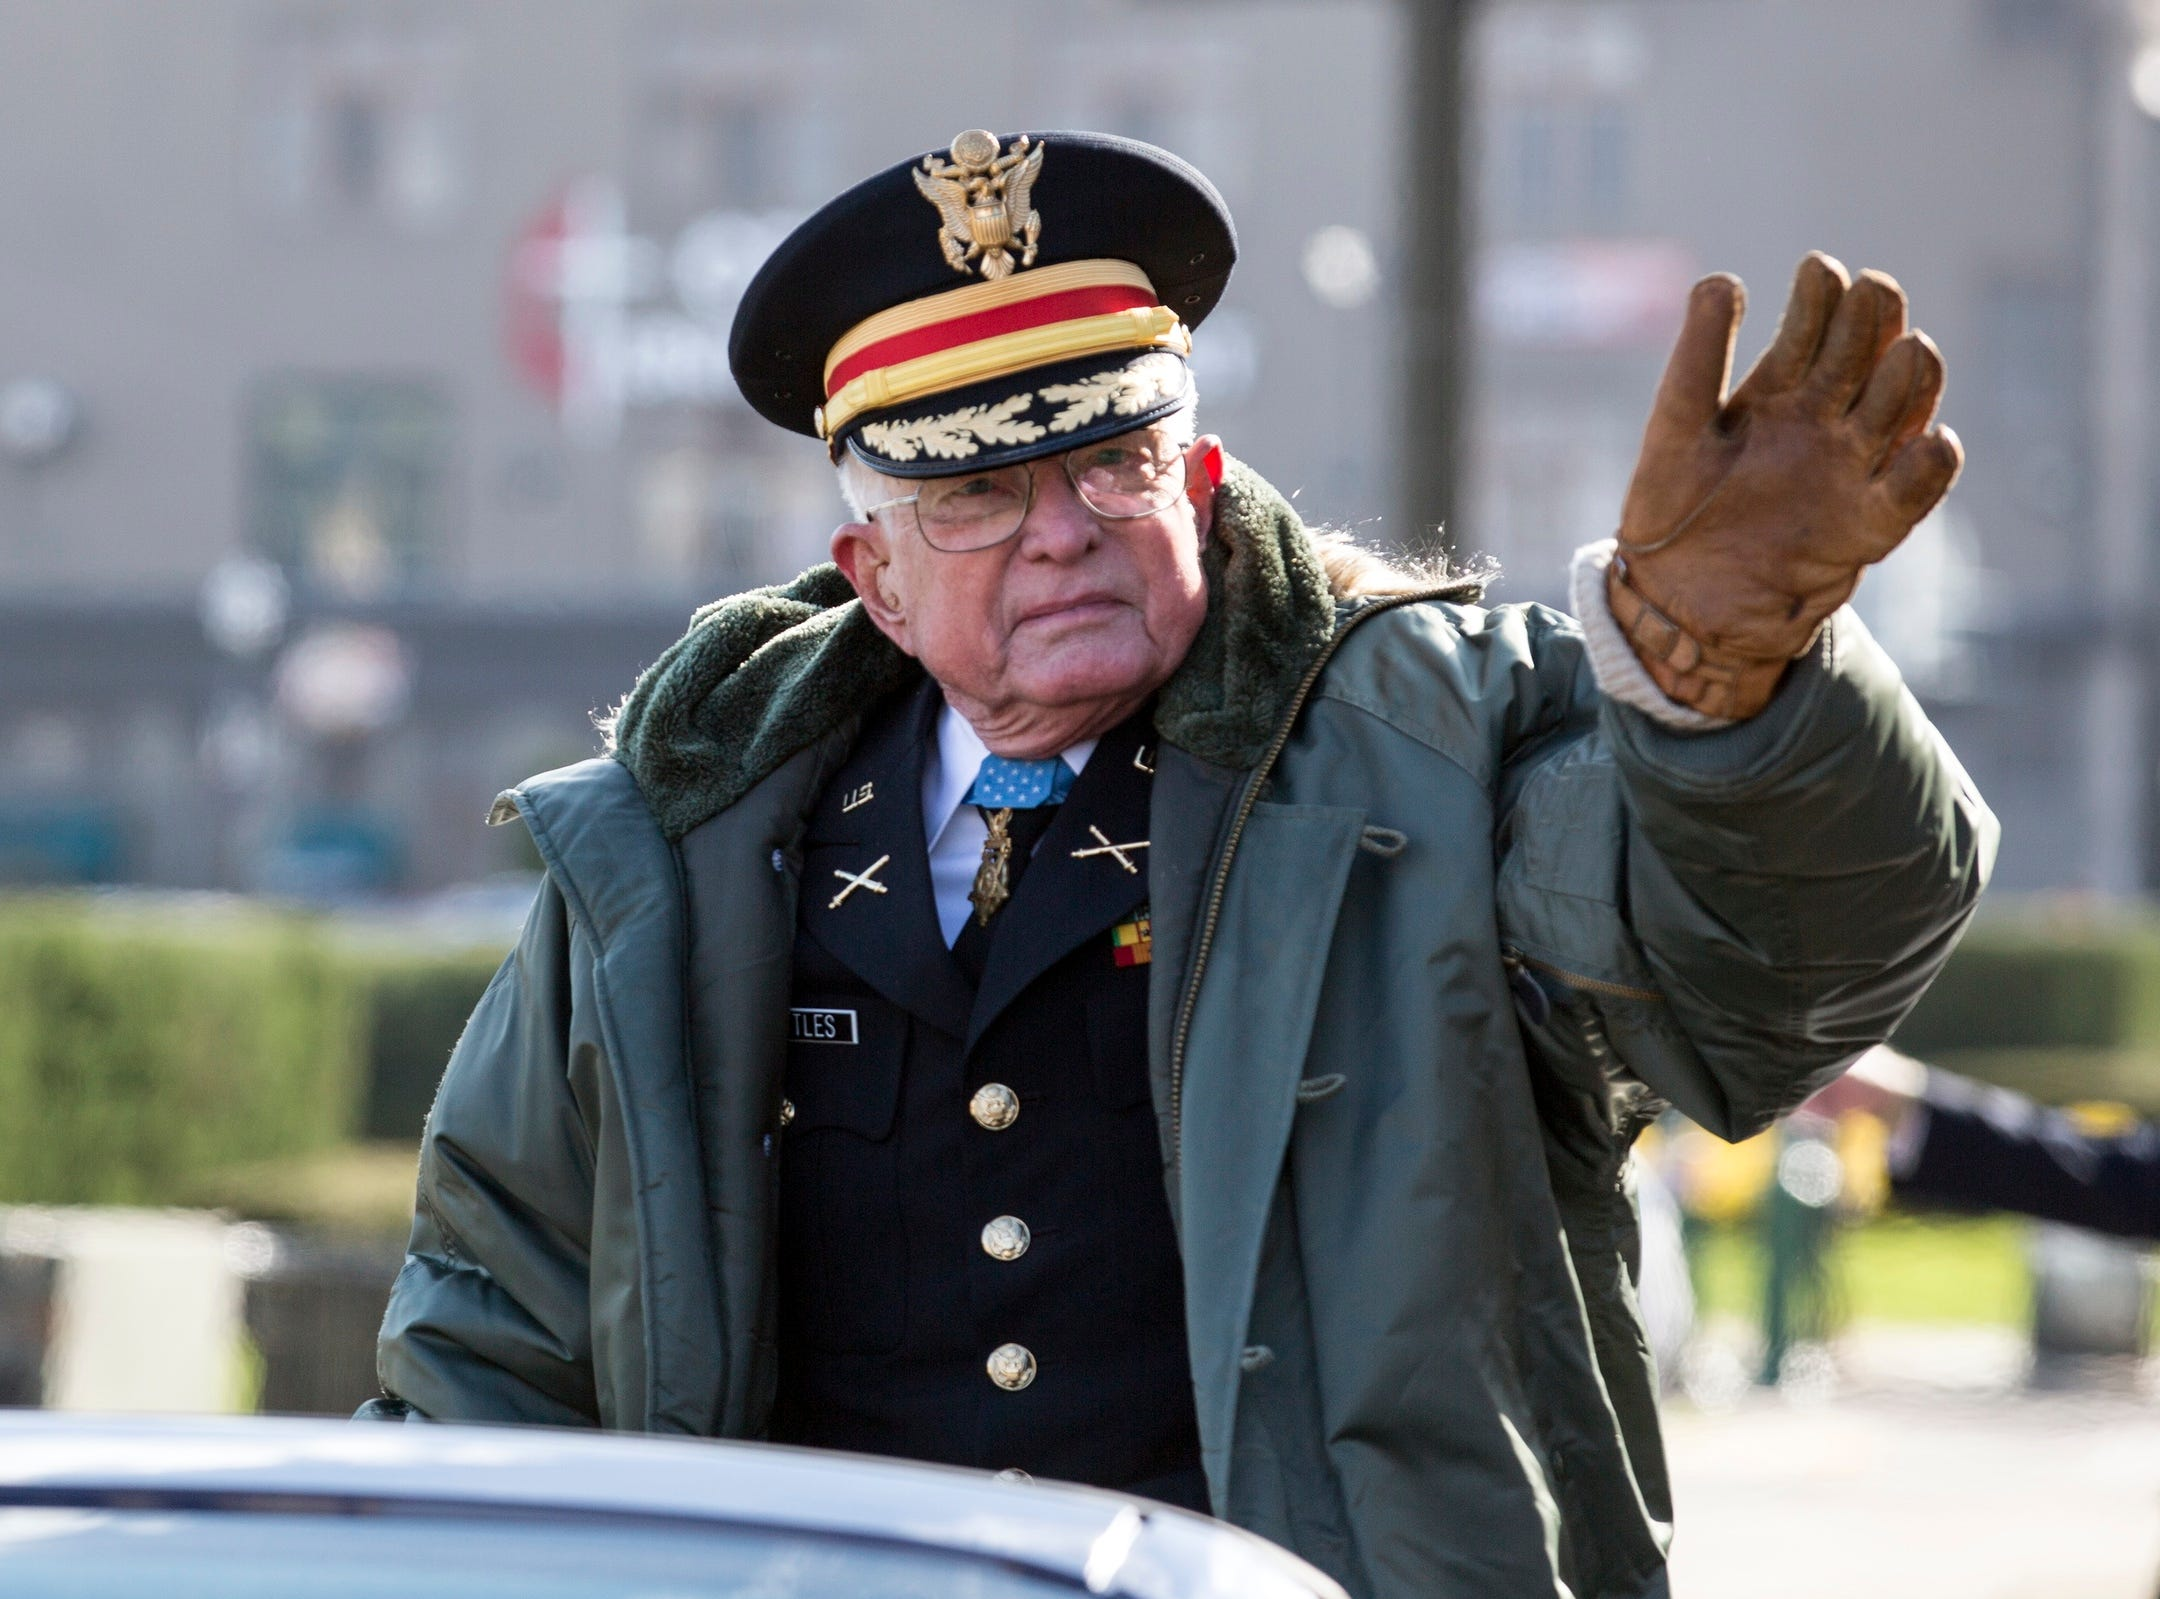 Detroit Veterans Day parade marks 100th anniversary of WWI's end